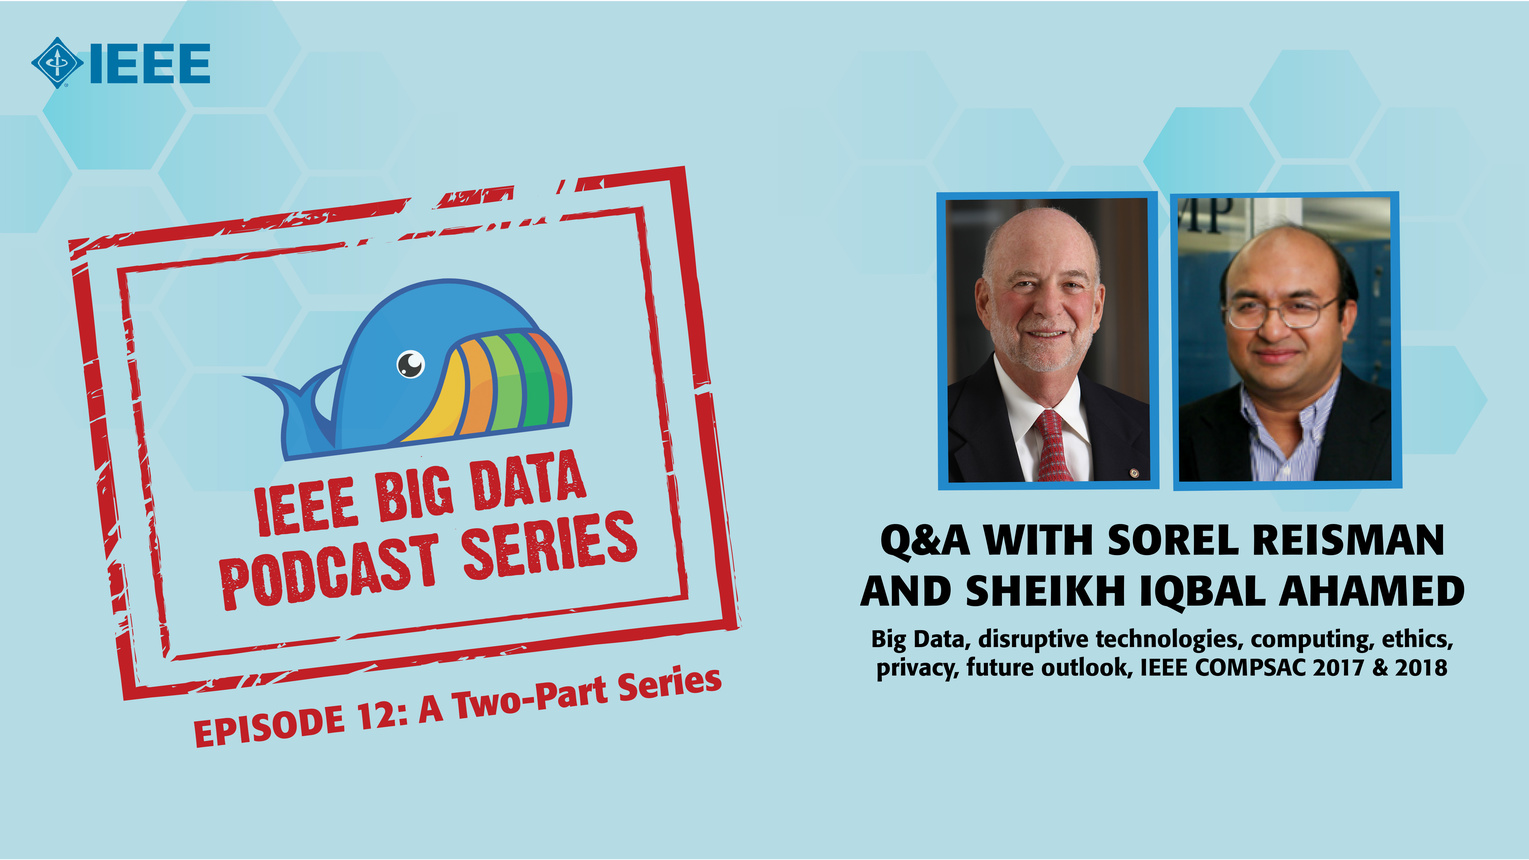 Q&A with Sorel Reisman & Sheikh Iqbal Ahamed, Part 1: IEEE Big Data Podcast, Episode 12